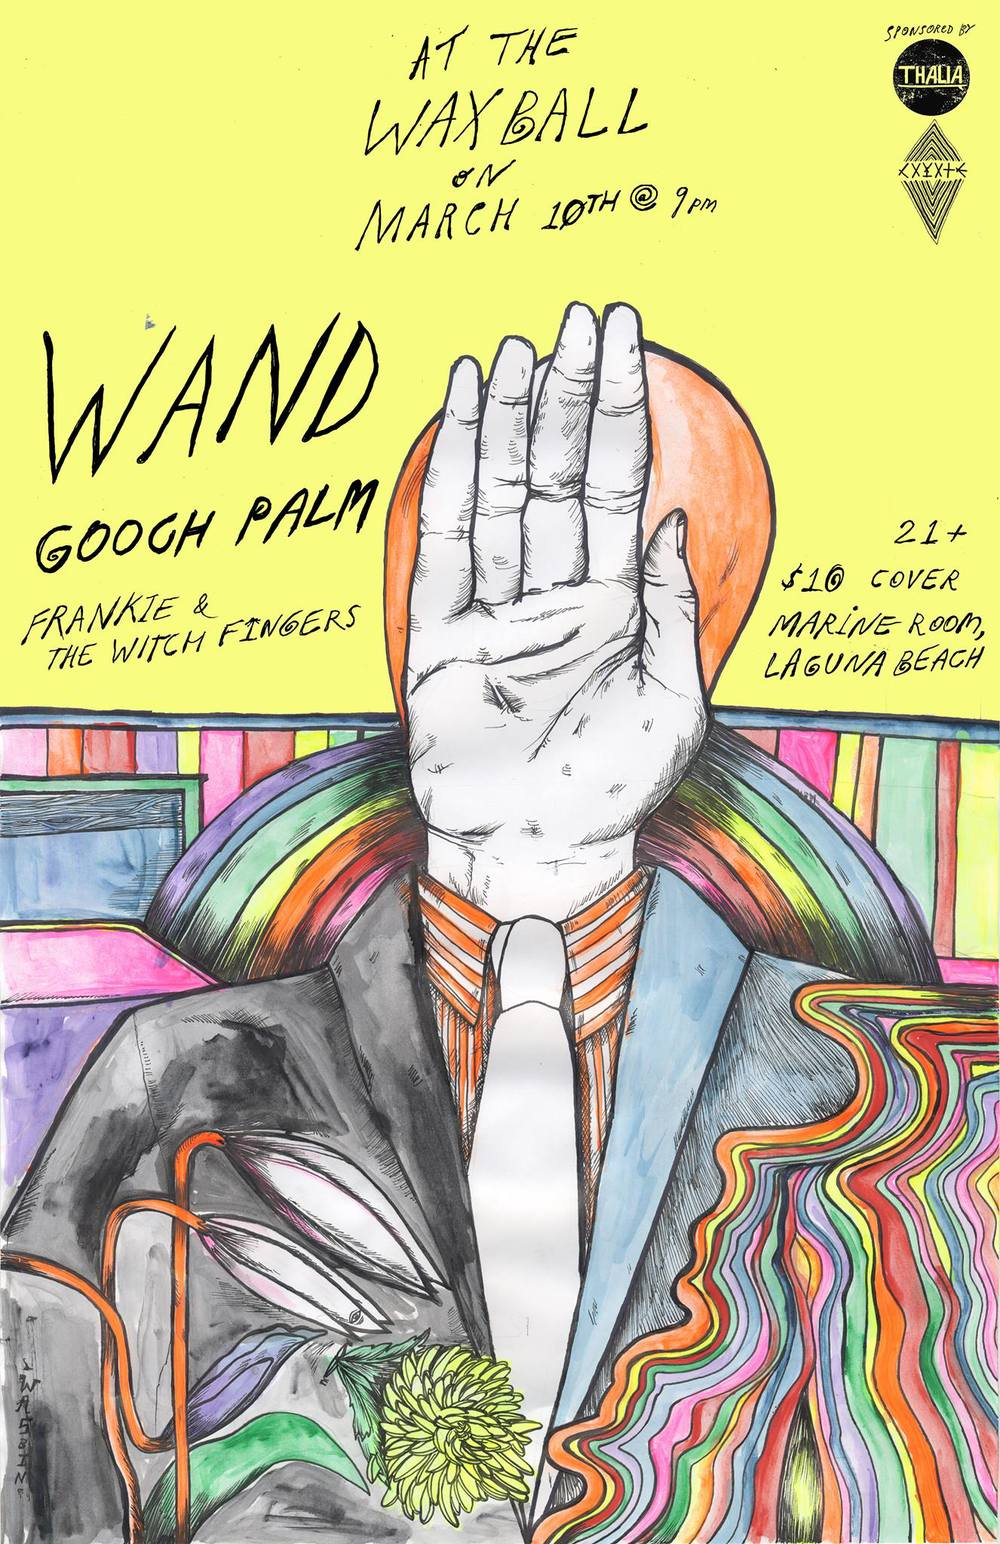 "Featuring live performances by: WAND [LA] GOOCH PALMS [AUS] FRANKIE & THE WITCH FINGERS [INDIANA] WAND - Hailing from Los Angeles, CA. WAND is getting ready for their album debut 'Golem' to hit shelves mid-March 2015. ""The Los Angeles-based quartet, which was signed by Ty Segall himself to his Drag City imprint, GOD? Records, and will appeal to fans of Tame Impala. Admiring the ""psychedelic stomp"" of recent single ""Broken Candle"", music blog Austin Town Hall goes on the describe the album like this: ""Ganglion Reef has a great deal of fuzzy elements to it but they walk this fine line between being noisy and radio-friendly."""" - HypeM GOOCH PALMS - For almost 4 years Australia's favorite punk sweethearts have been melting faces with their high energy, take no prisoners, balls out, drool-inducing live shows. They make a lot of noise for a minimal two piece but what they lack in instrumentation they make up for in stage presence and songs that you'll be humming, whether you want to or not, for days, months or maybe even years after the show is over. They've shared the stage with the likes of Jon Spencer Blues Explosion, Thee Oh Sees, 5,6,7,8's, Nobunny, Hunx & His Punx, Shannon & The Clams, The King Khan & BBQ Show, Tyvek and more. FRANKIE & THE WITCH FINGERS - Straight outta Bloomington, Indiana [and now Los Angeles], Frankie & The Witch Fingers give a nod to bands like The Sonics, The Seeds, The Nerves and 13th Floor Elevators. Dylan channels the inner thoughts and dreams of his psychedelic feline companion, Frankie. They share a singluar MIND and channel aural colors and shapes thru the ELECTRIC SÉANCE. The ""fingers"" are what you would expect them to be - pieces of the GREATER BEING, bent with occult knowledge. Together they melt music onto small reels of tape while exploring the INFINITE realm of sound. This phenomenon was referred to by the ancient ones as... Frankie and the Witch Fingers. Doors @ 9pm. 21+ $10 Cover Don't miss out on 3 epic bands! This Wax Ball is on a TUESDAY not Thursday this month!"